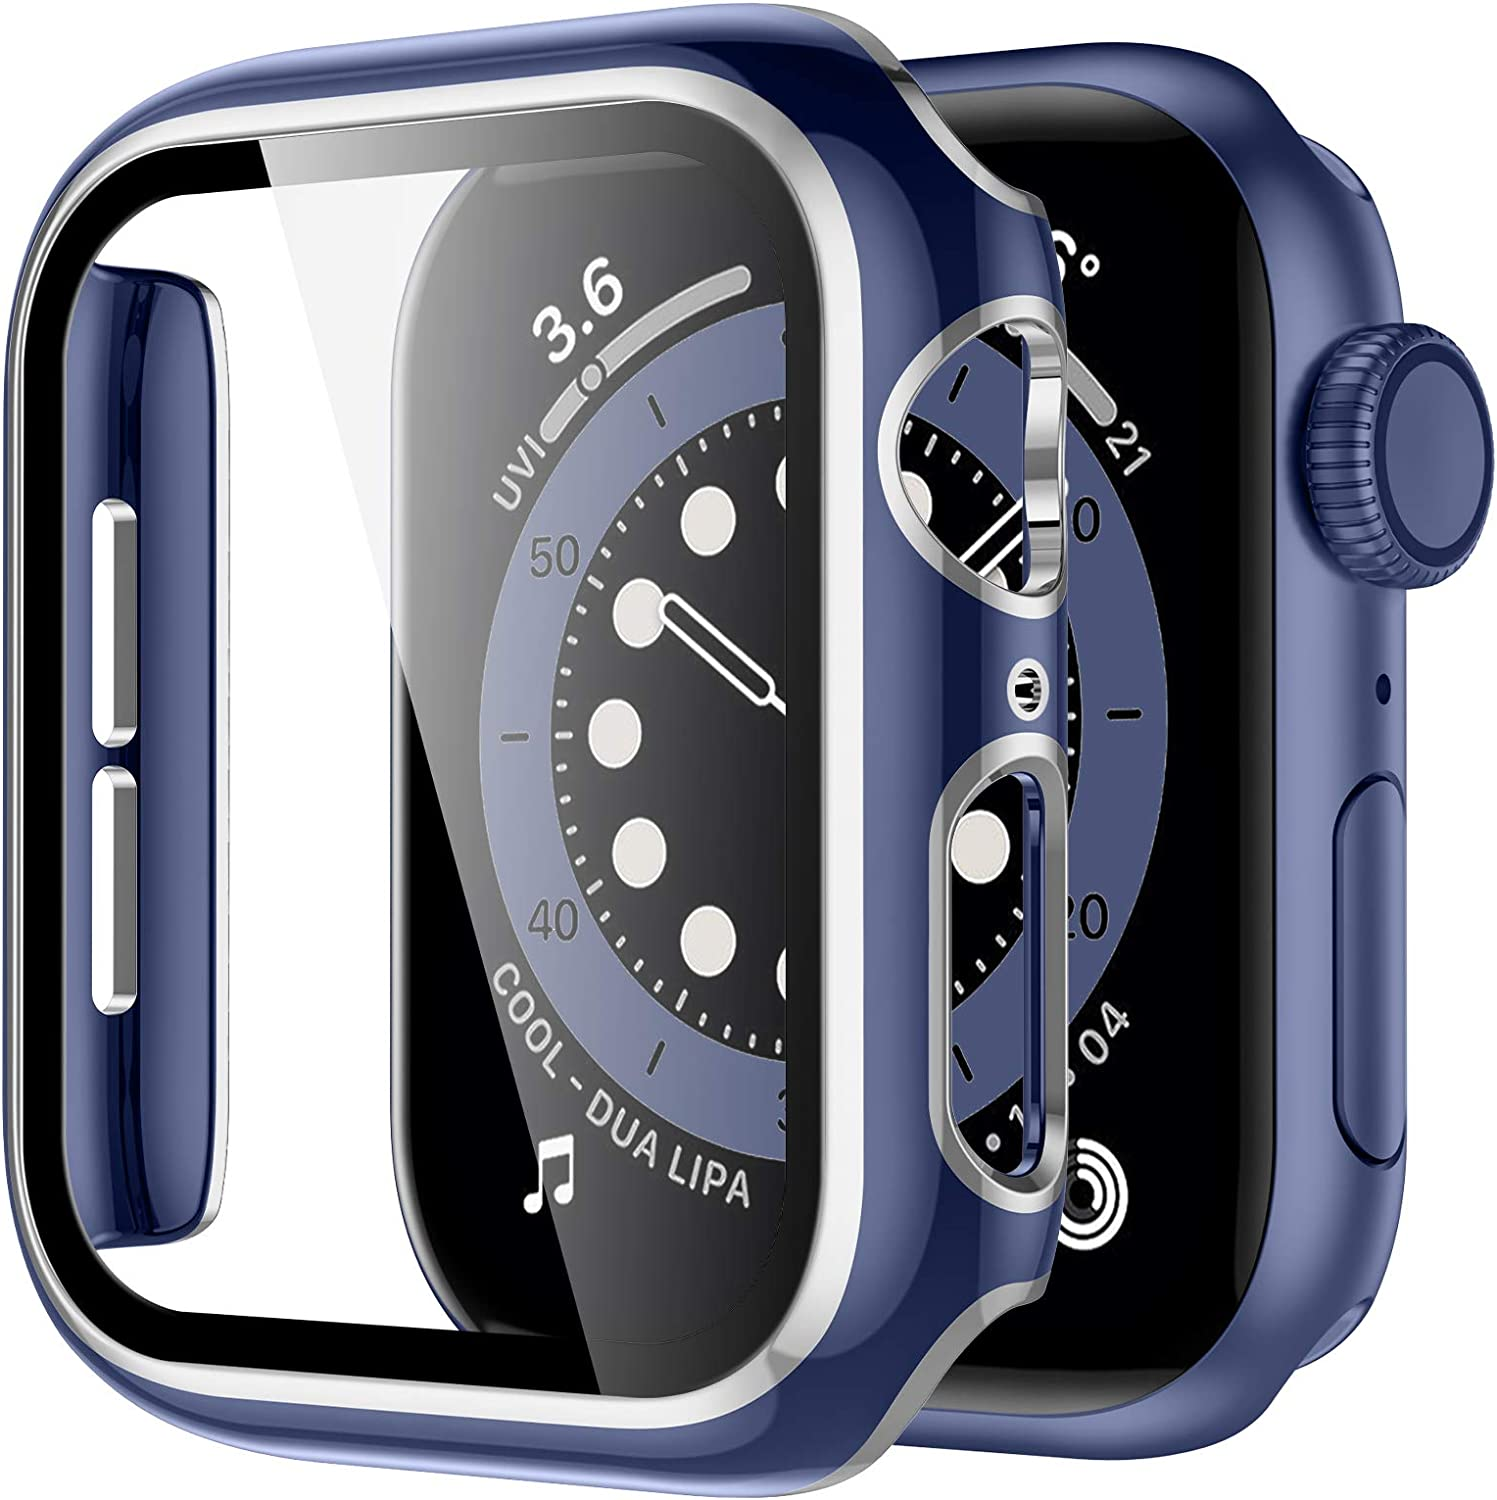 GEAK Case Compatible with Apple Watch SE 44mm Series 6/5/4 Built-in Screen Protector, Blue Hard PC Bumper Full Cover Pink Edge Protective Case for Women Men iWatch Case44mm Blue/Silver